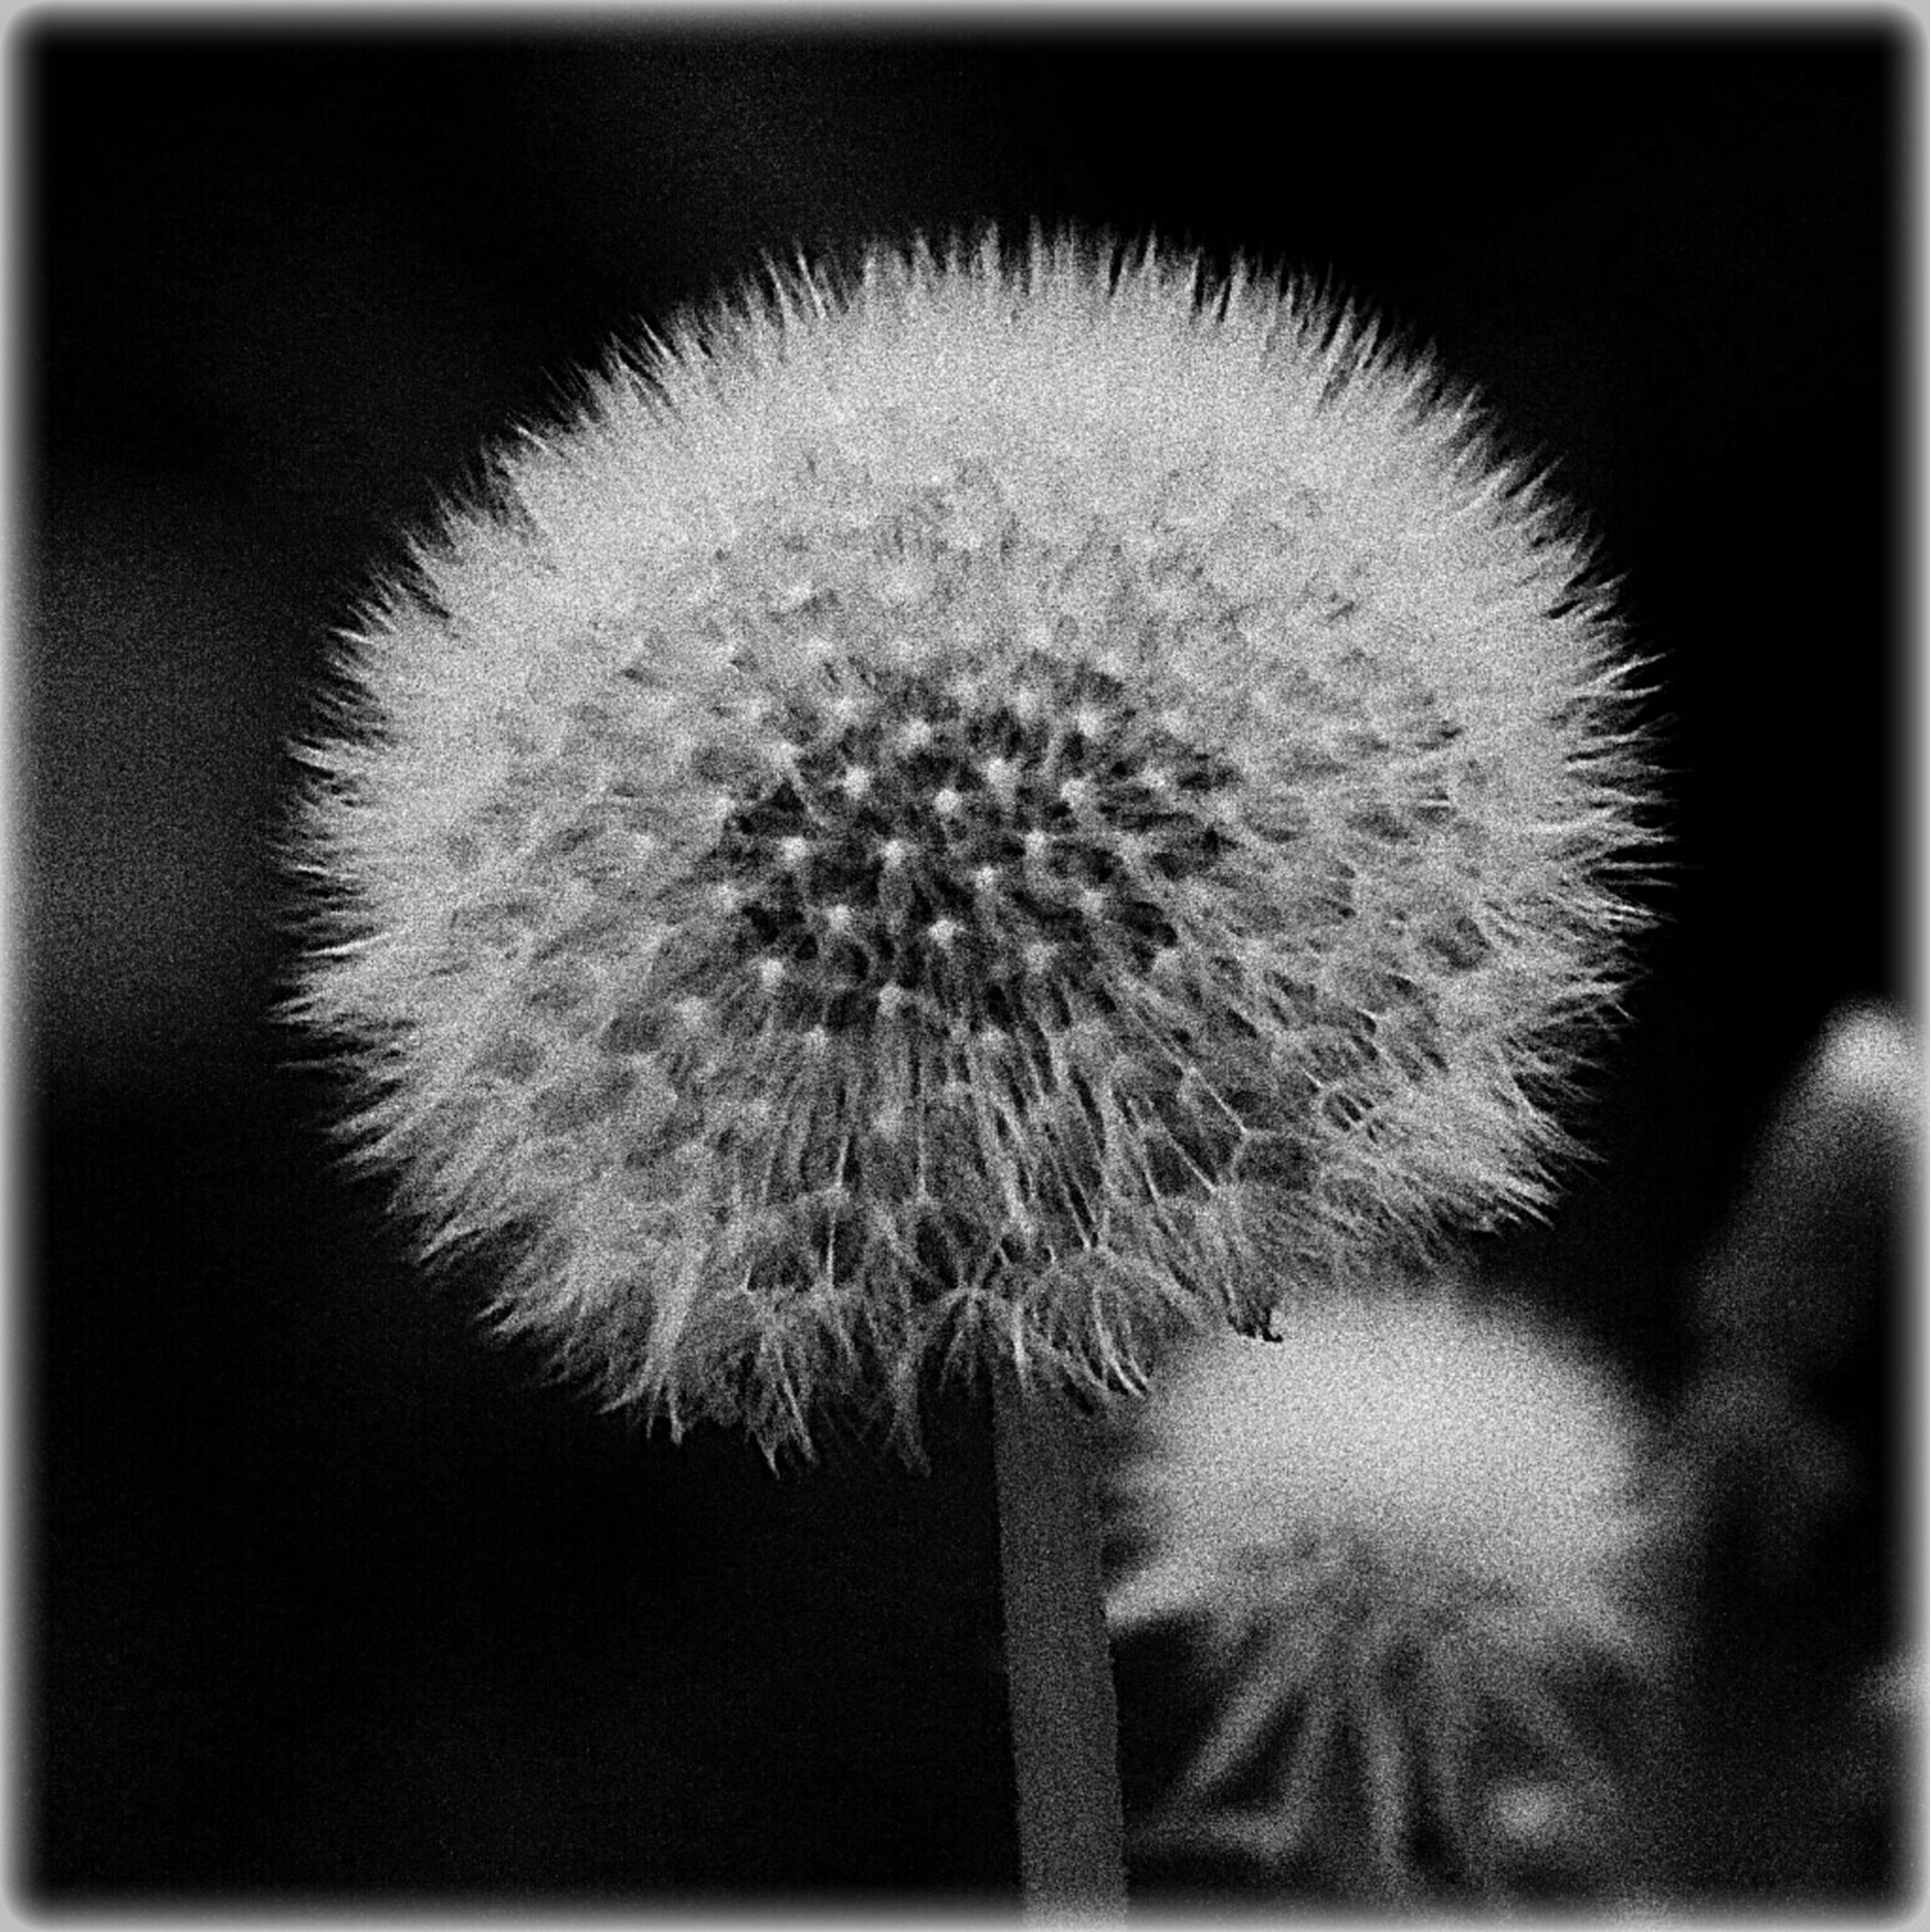 dandelion, flower, flower head, fragility, growth, freshness, close-up, beauty in nature, nature, single flower, softness, white color, auto post production filter, wildflower, focus on foreground, plant, stem, dandelion seed, uncultivated, selective focus